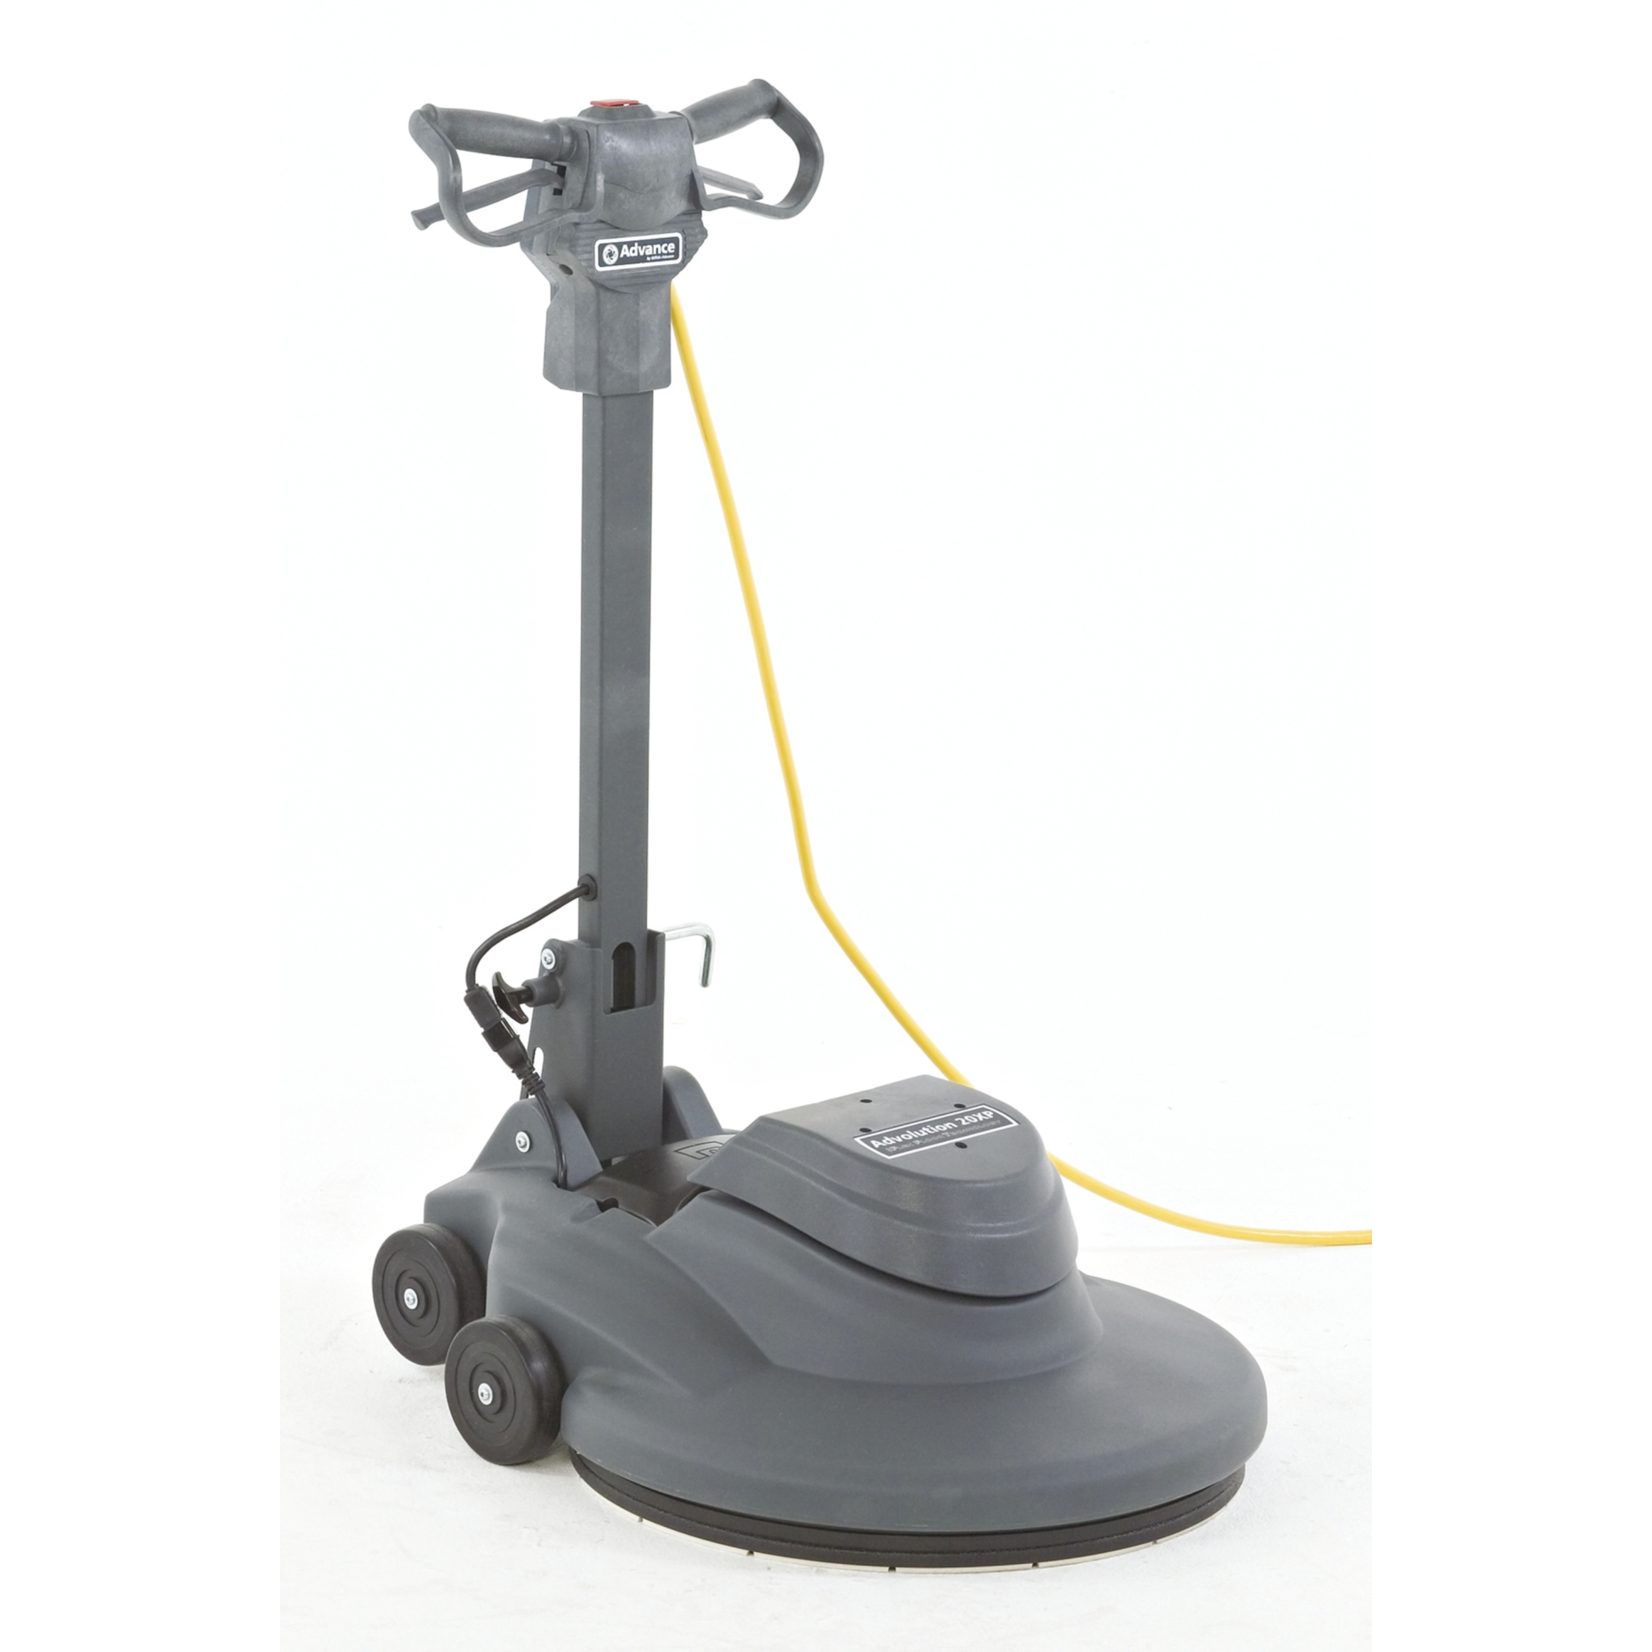 Advance ADVOLUTION 20XP BURNISHER Corded Electric Burnisher with Dust Control